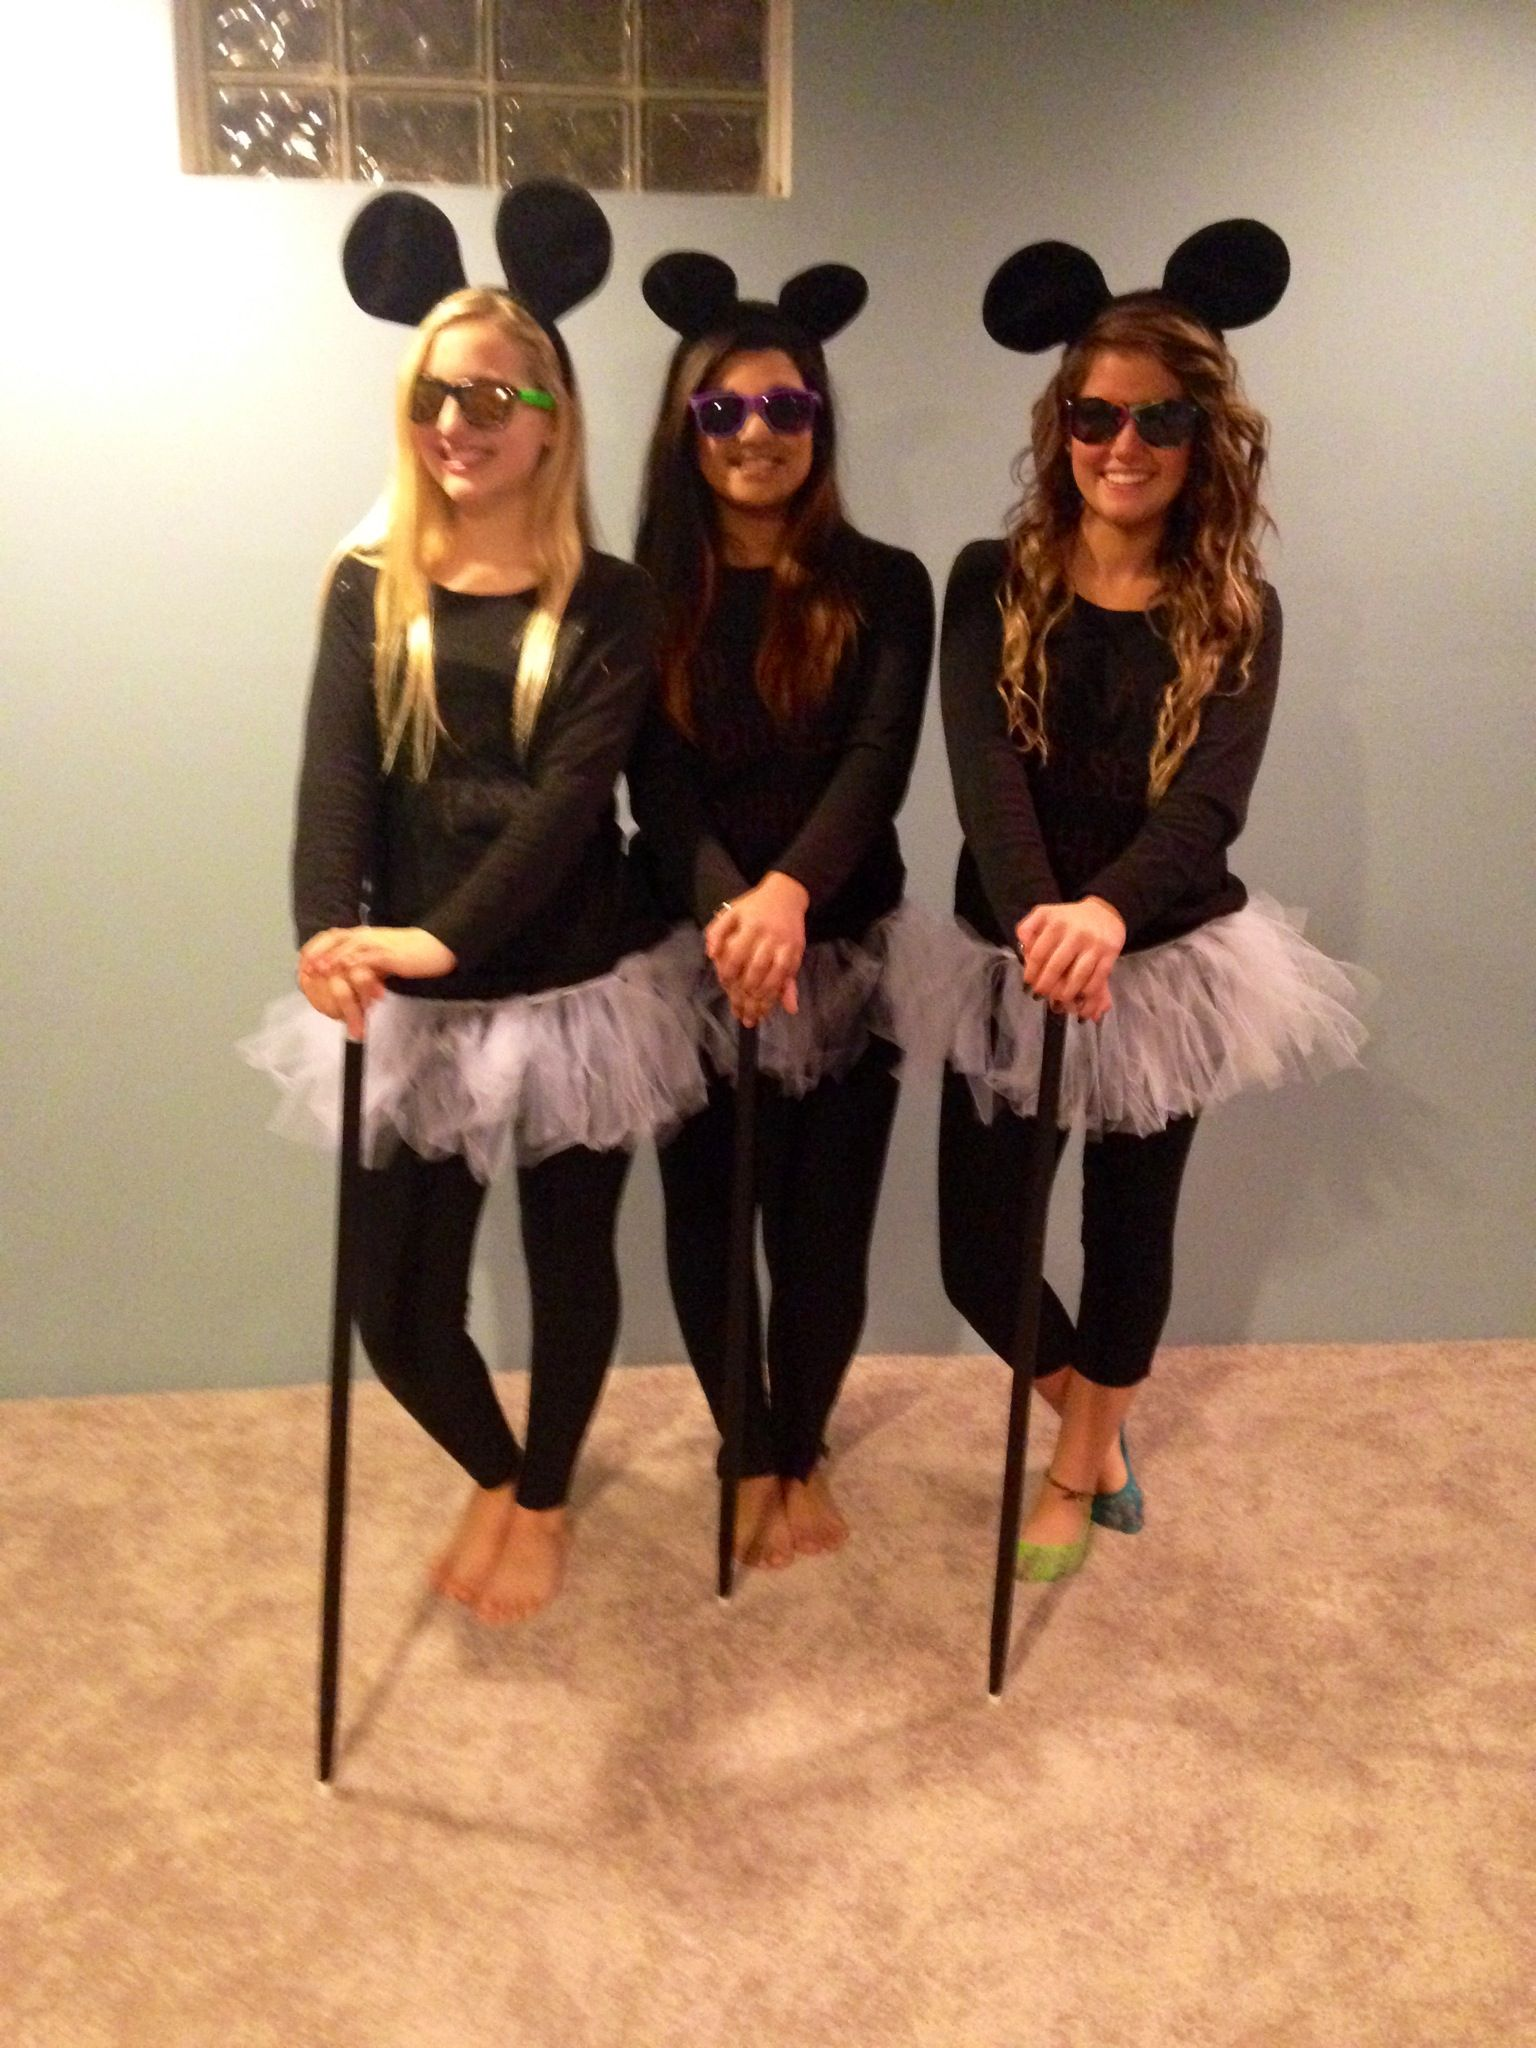 3 blind mice diy halloween costumes for girls - 3 Girl Costumes Halloween